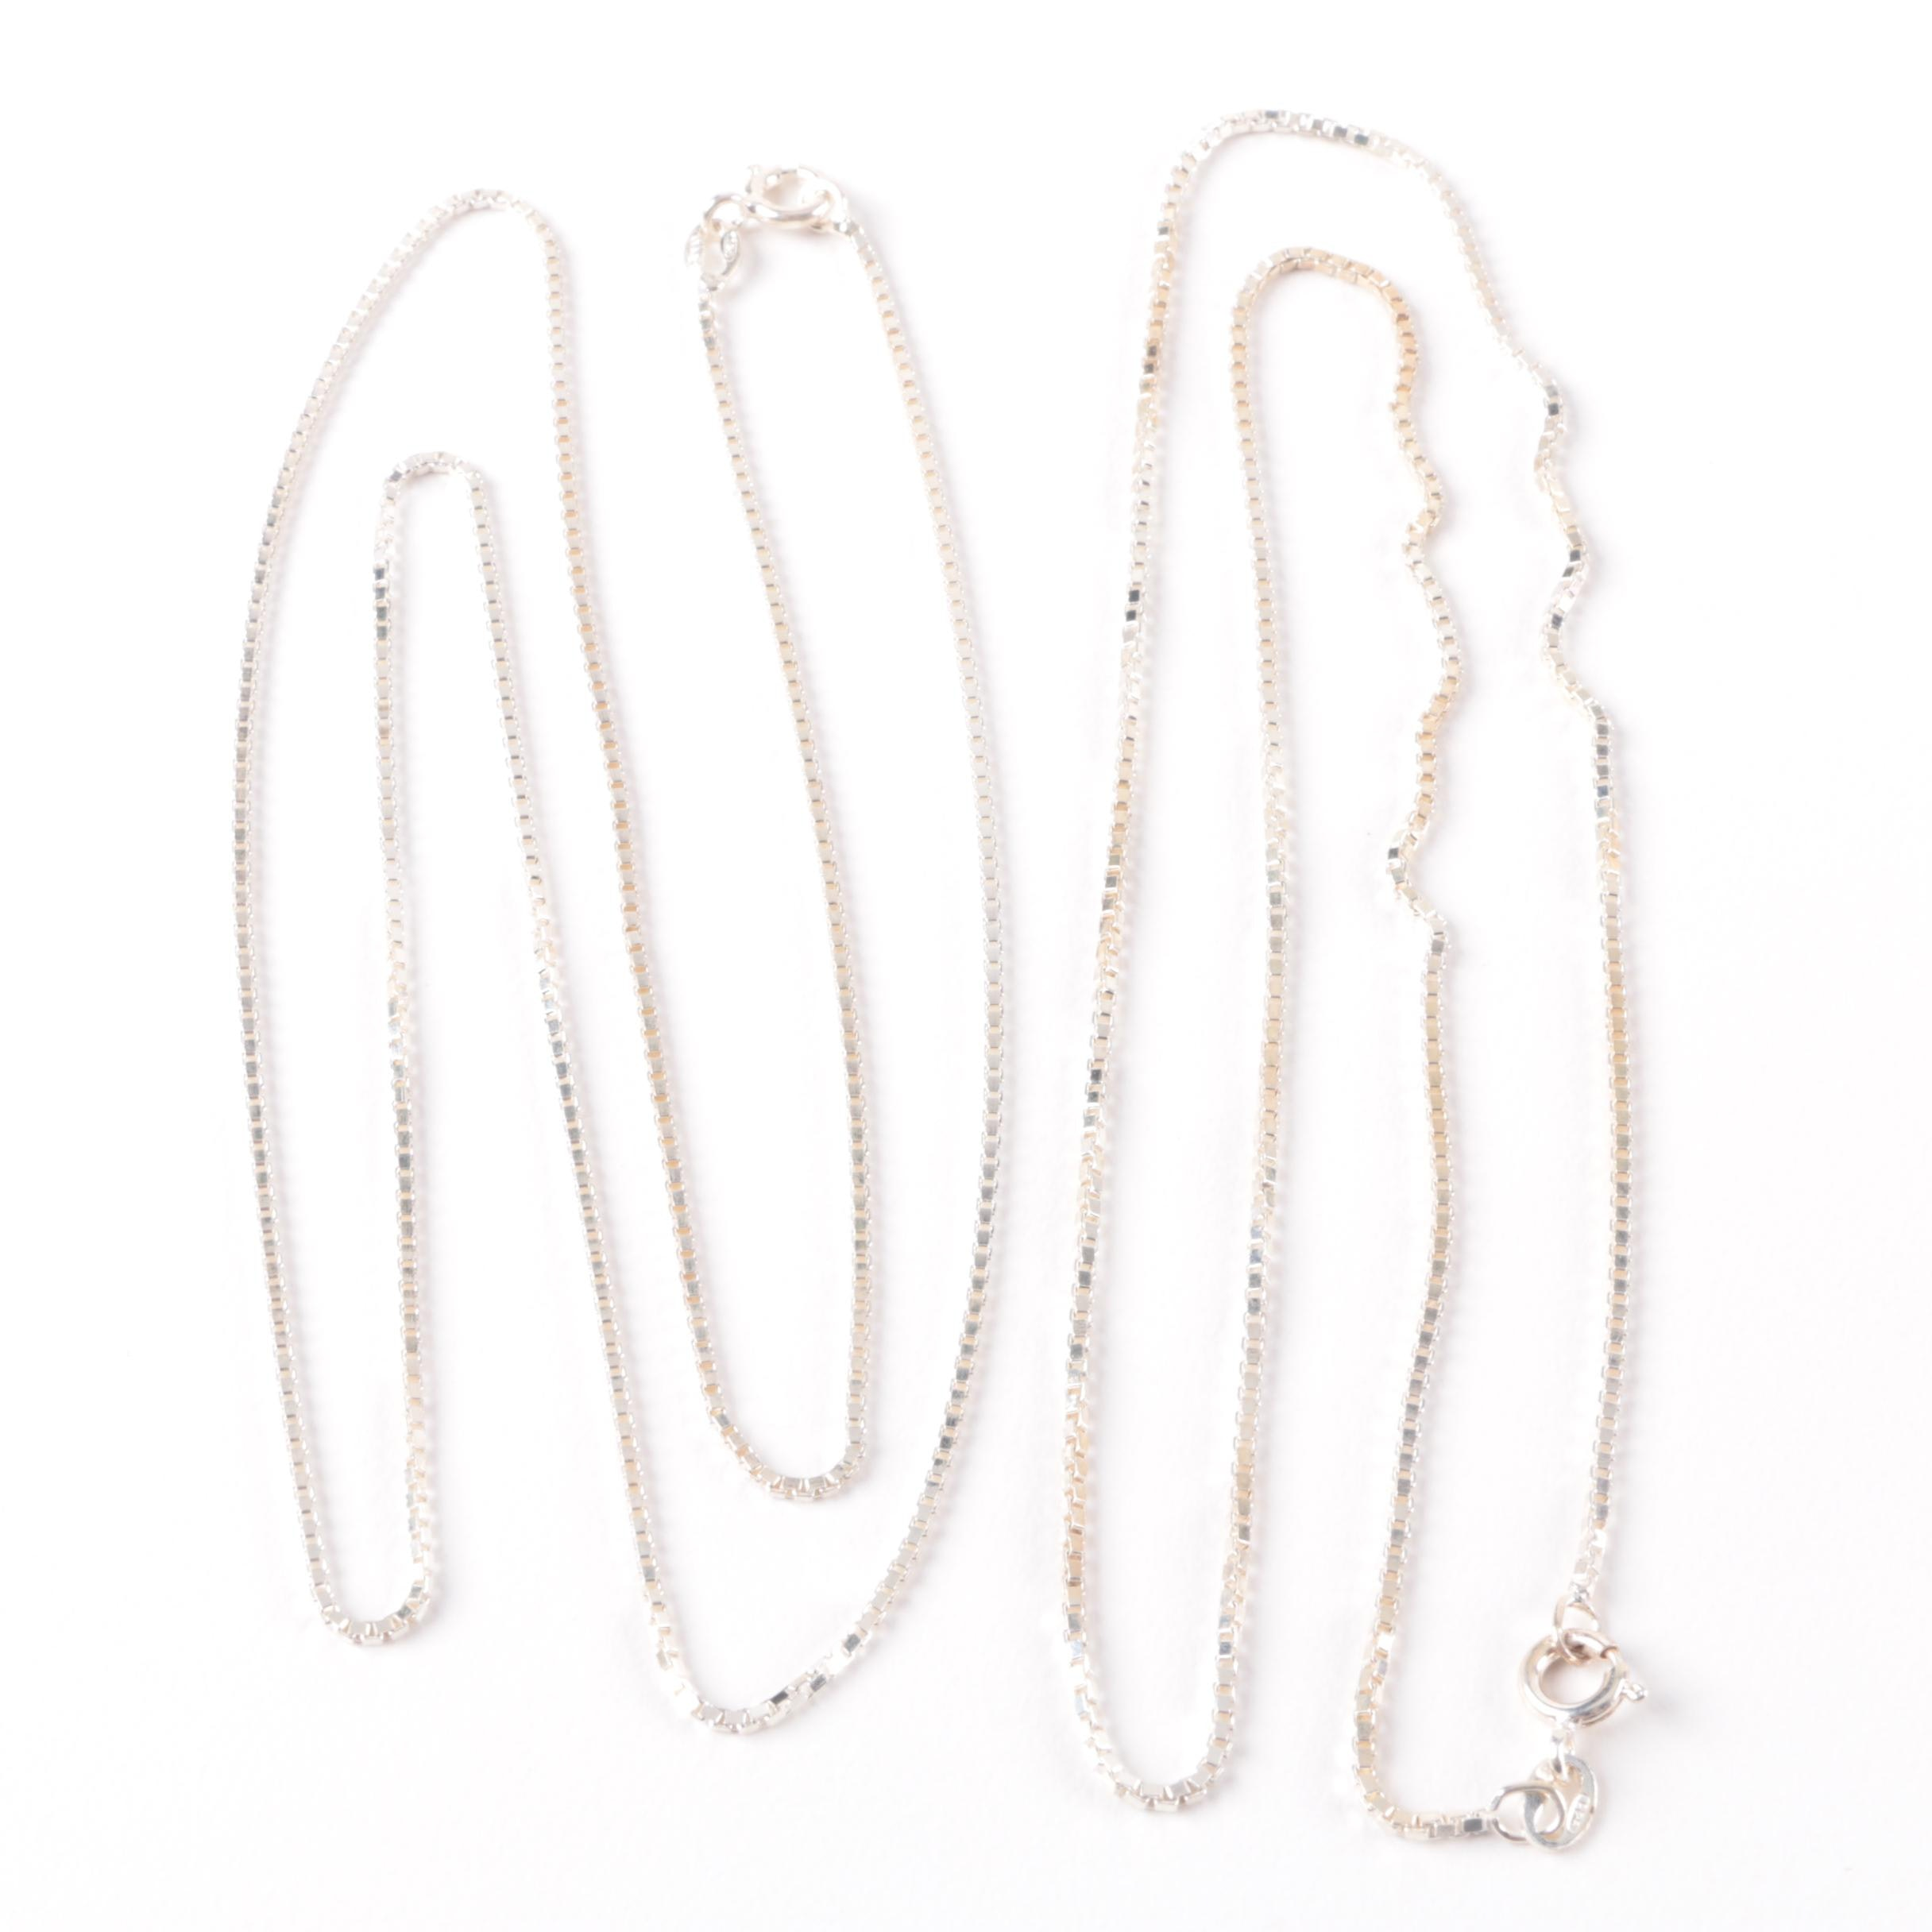 Selection of Sterling Silver Box Link Chain Necklaces